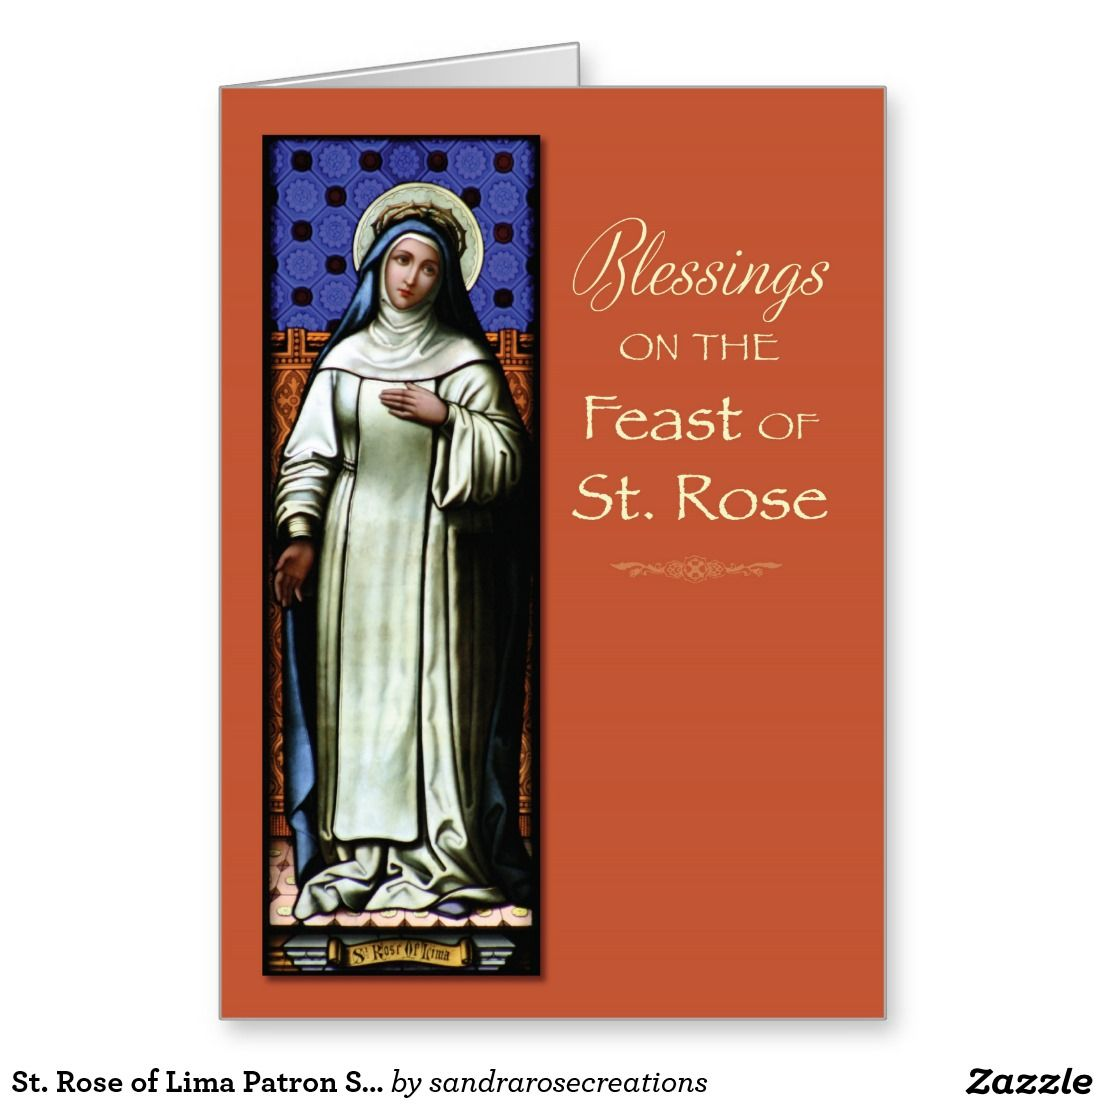 St rose of lima patron saint feast day blessings greeting card st rose of lima patron saint feast day blessings greeting card kristyandbryce Choice Image